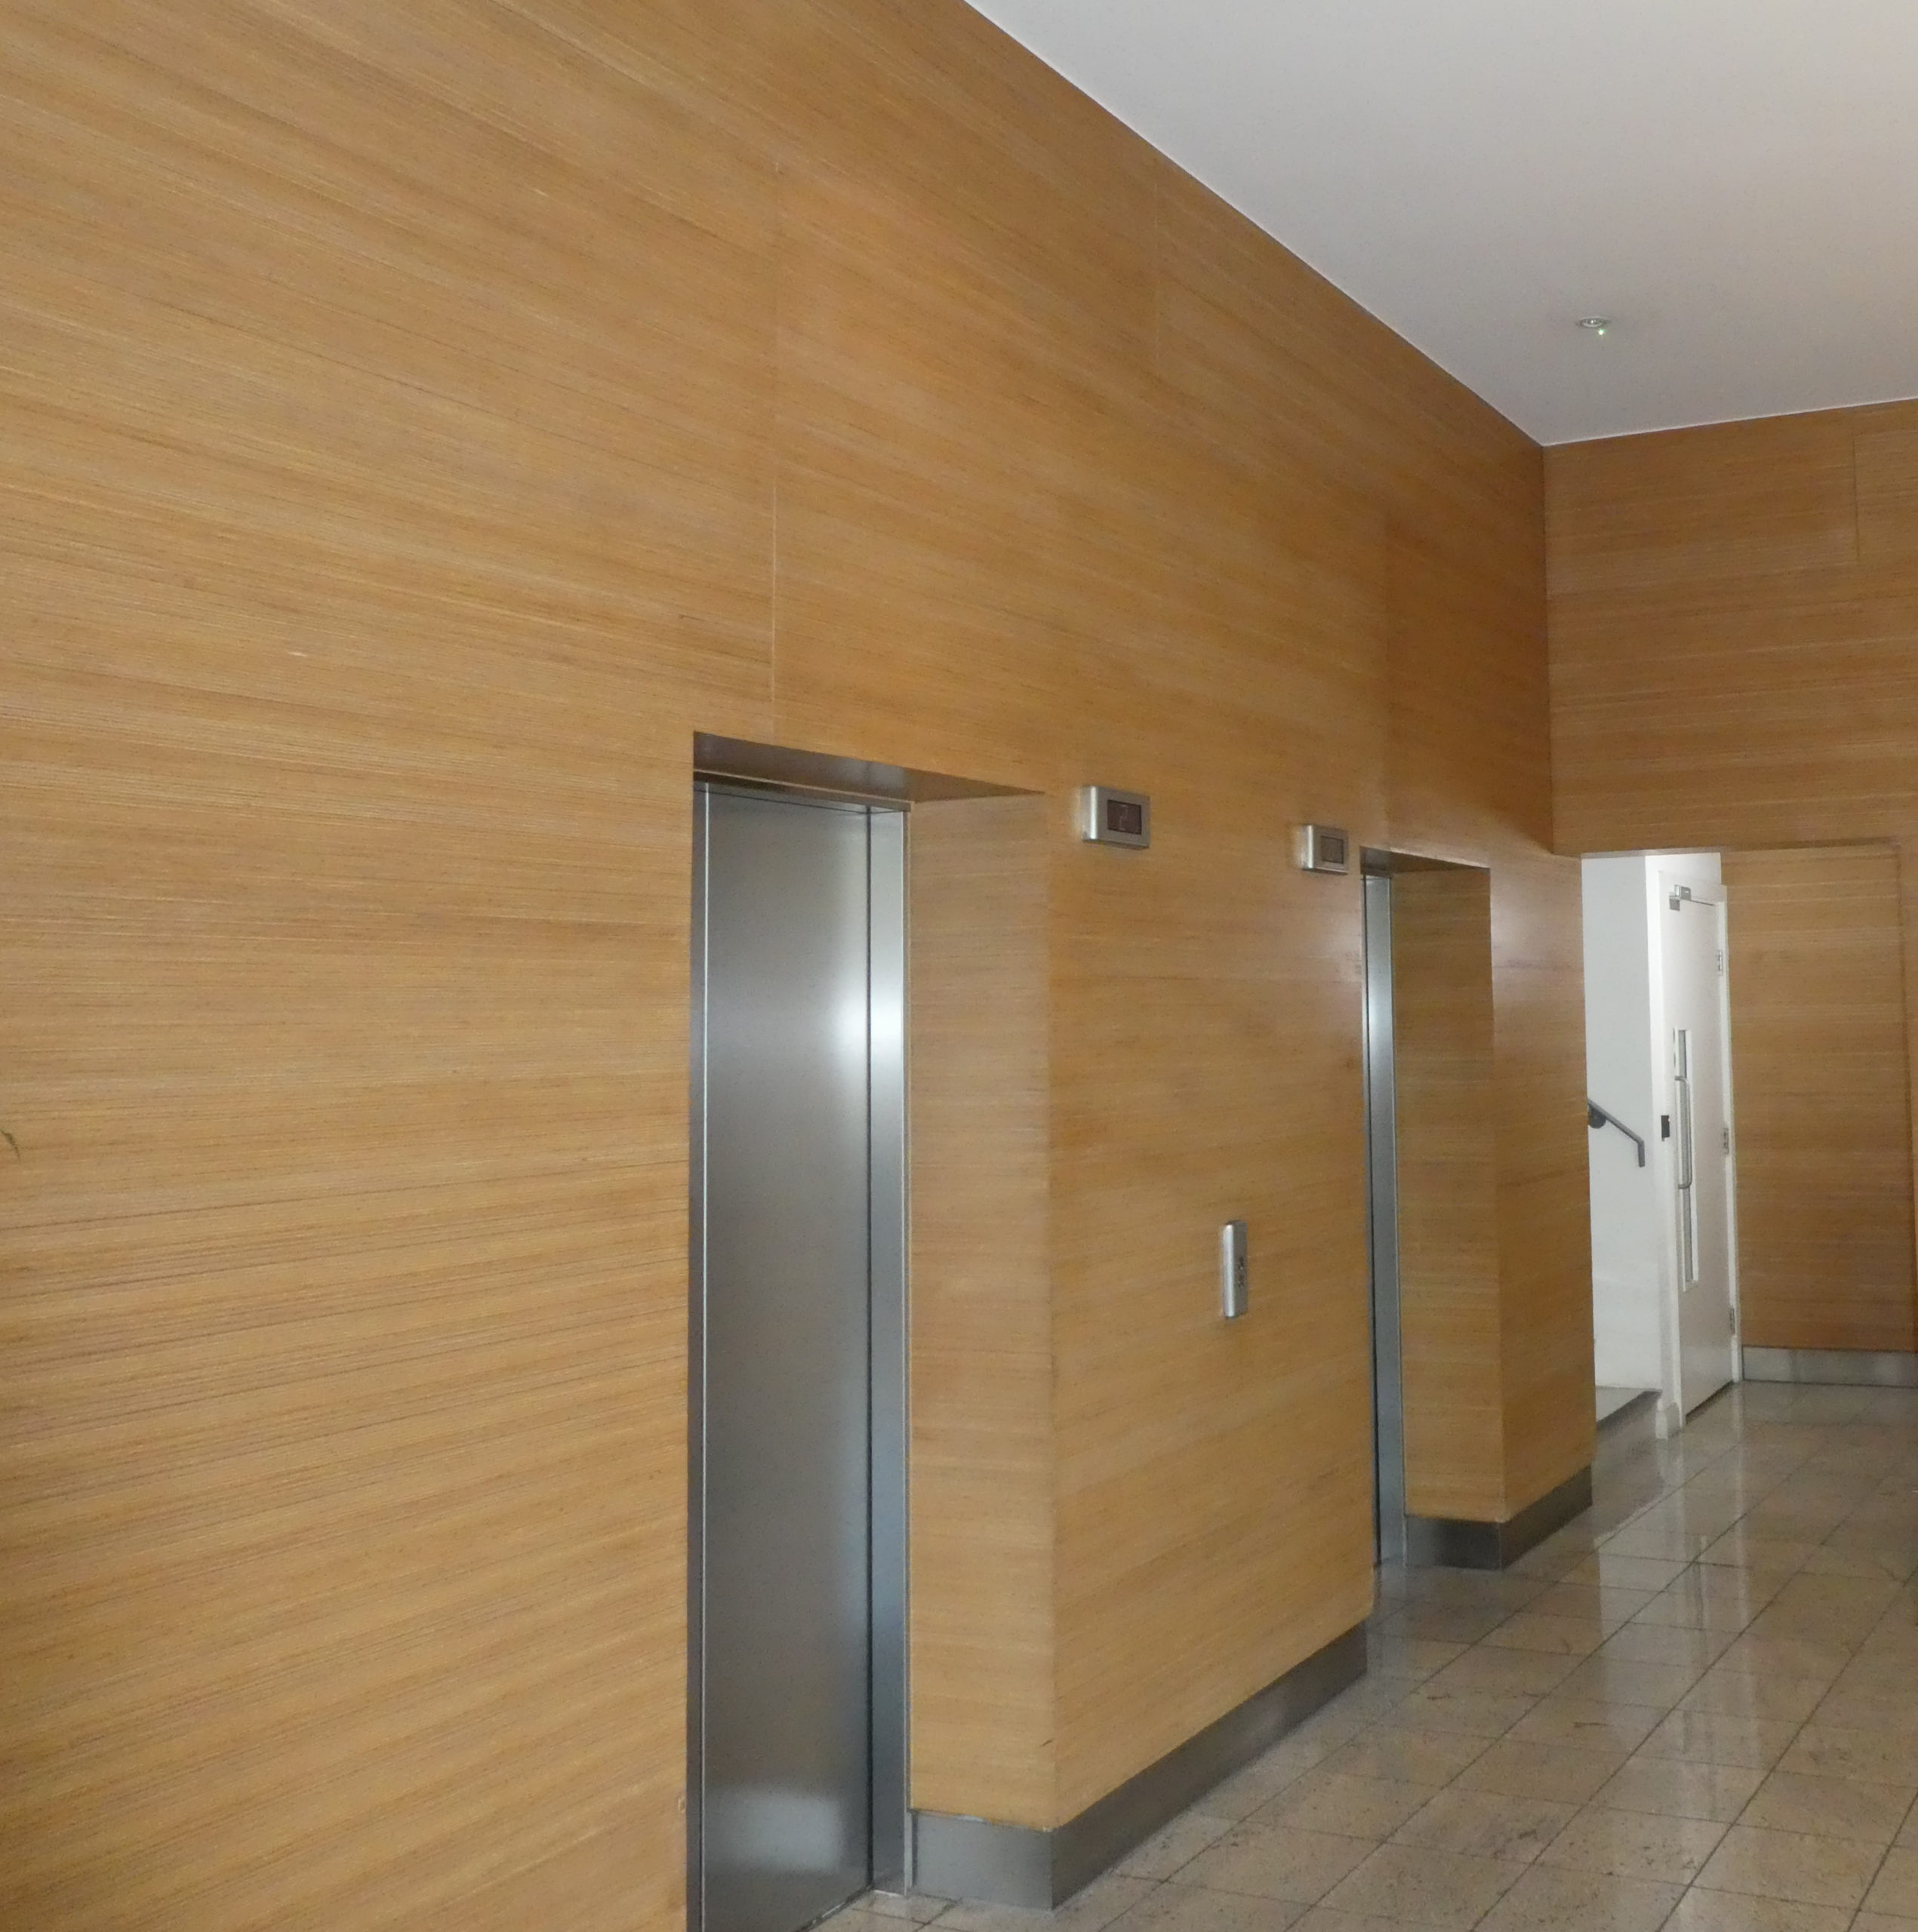 CLADDING WOODEN WALL